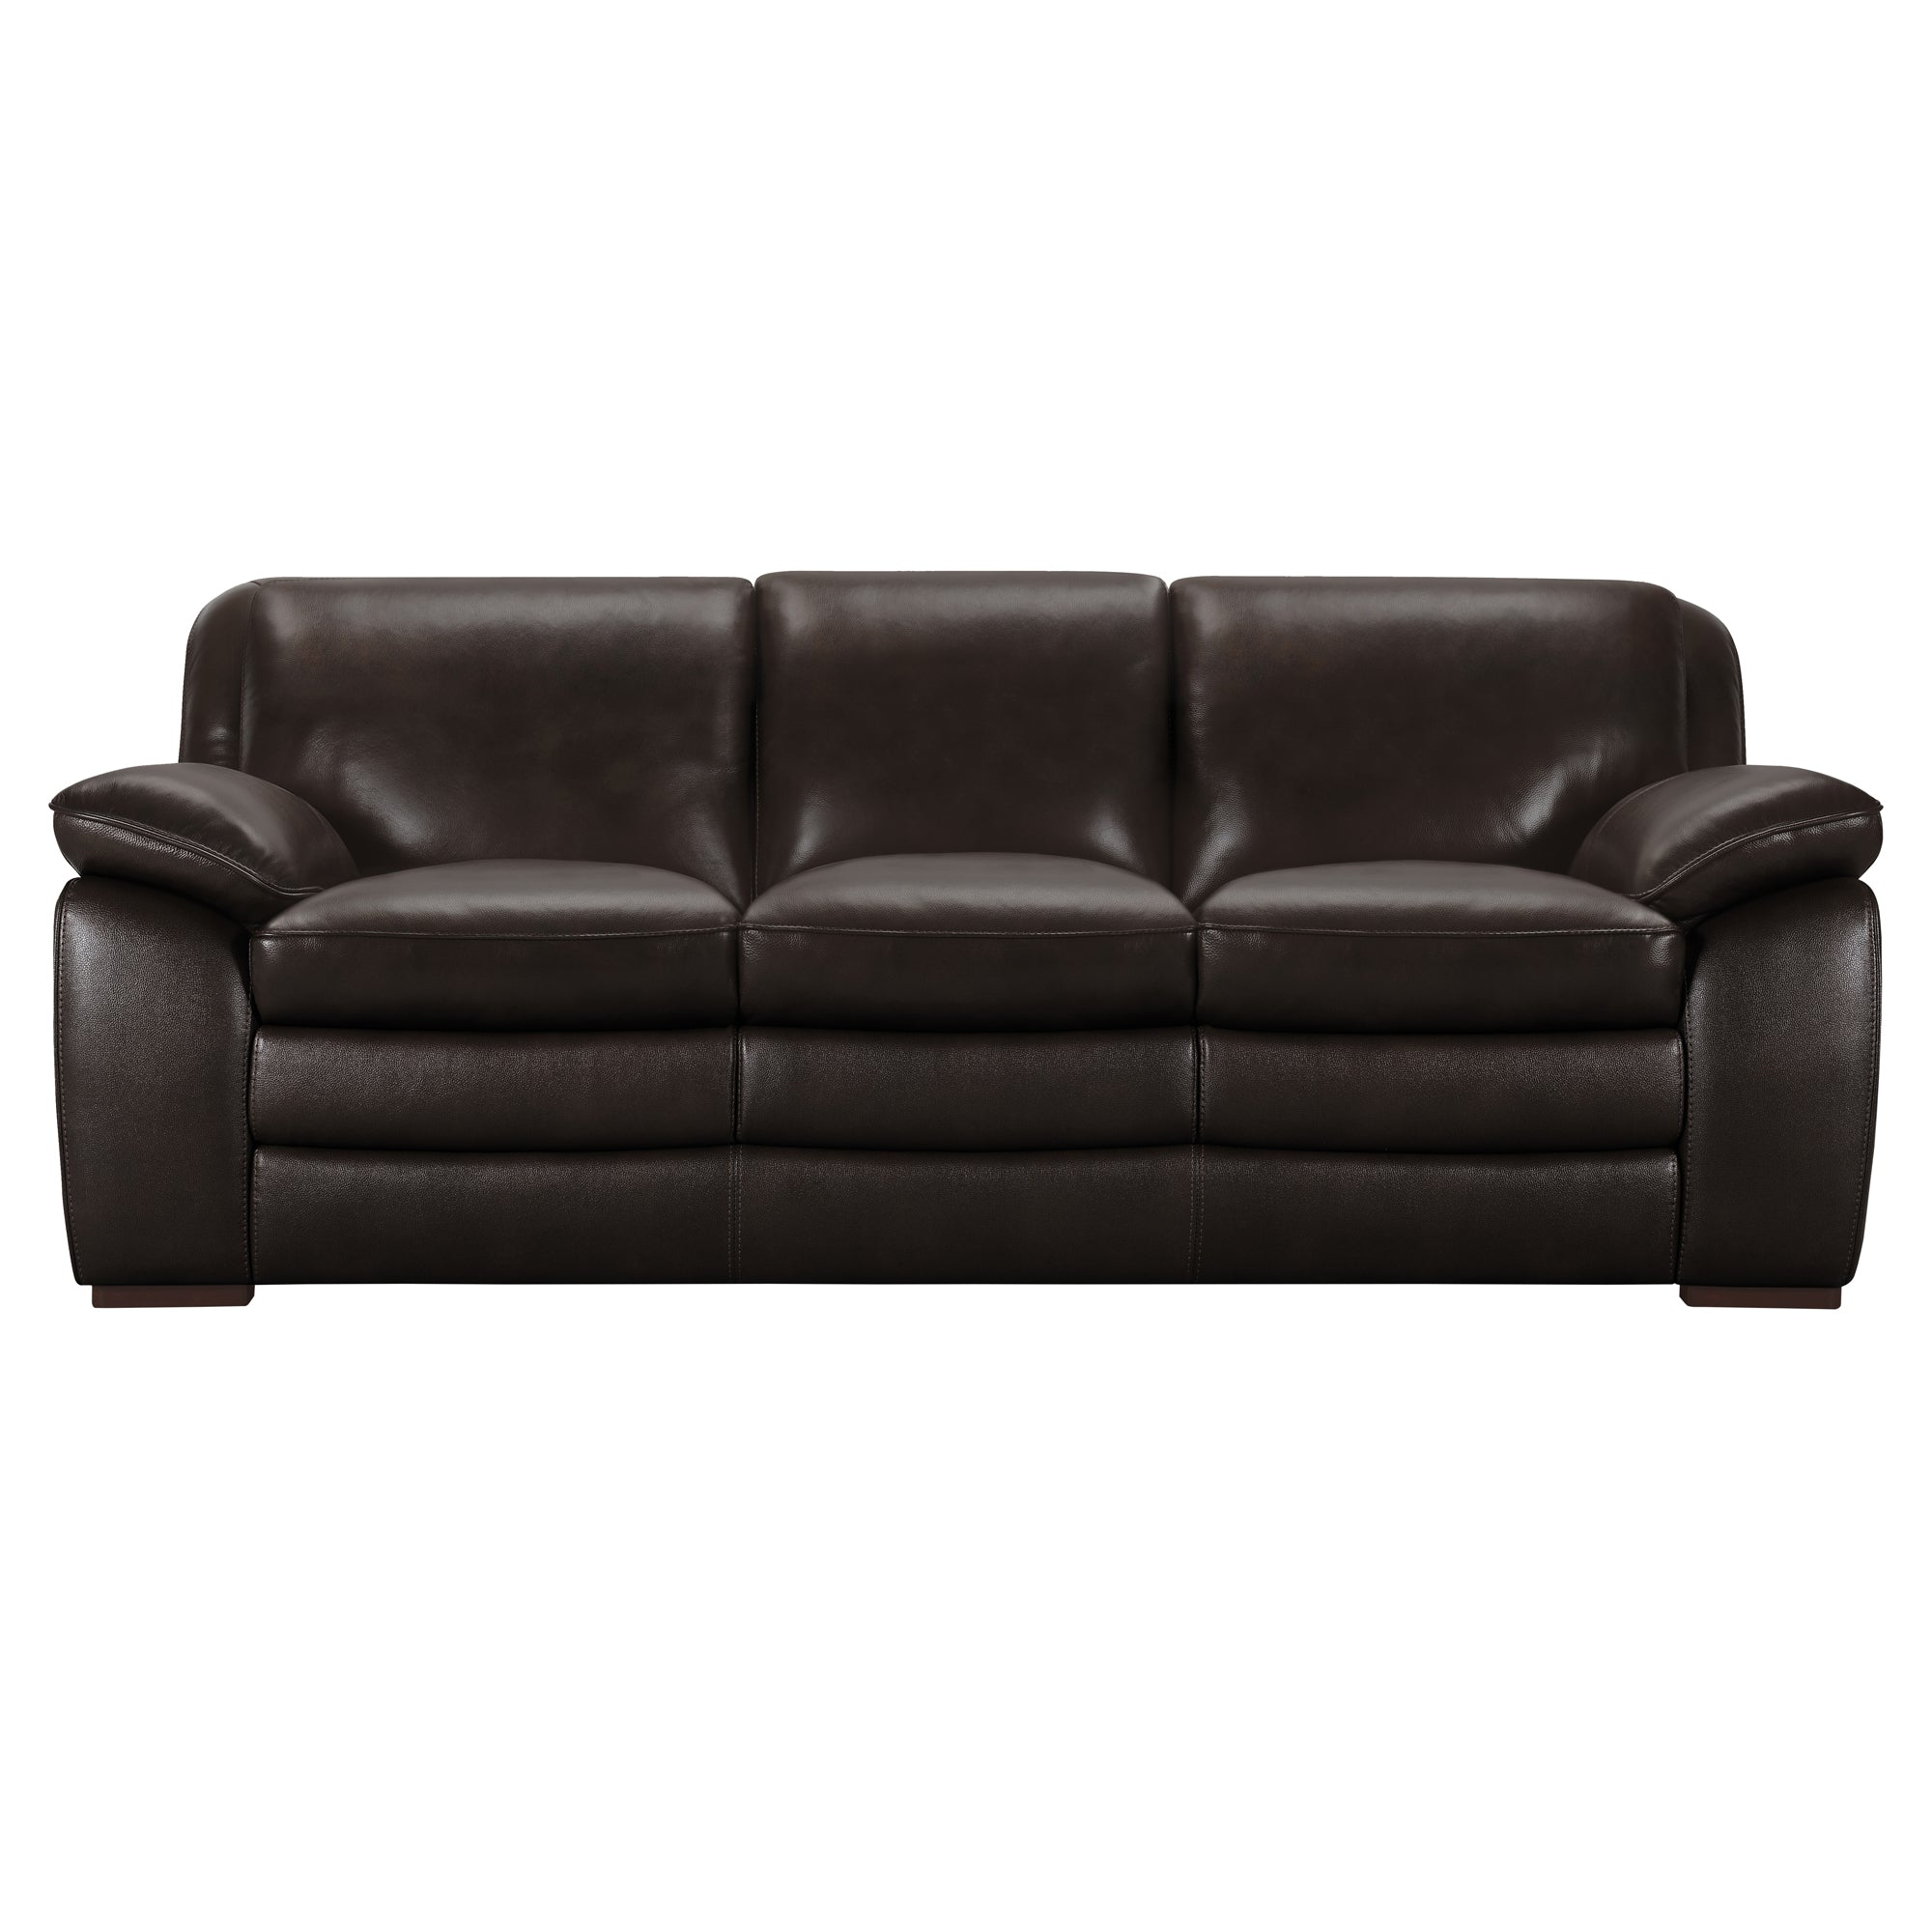 Armen Living Contemporary Sofa Genuine Dark Brown Leather Brown